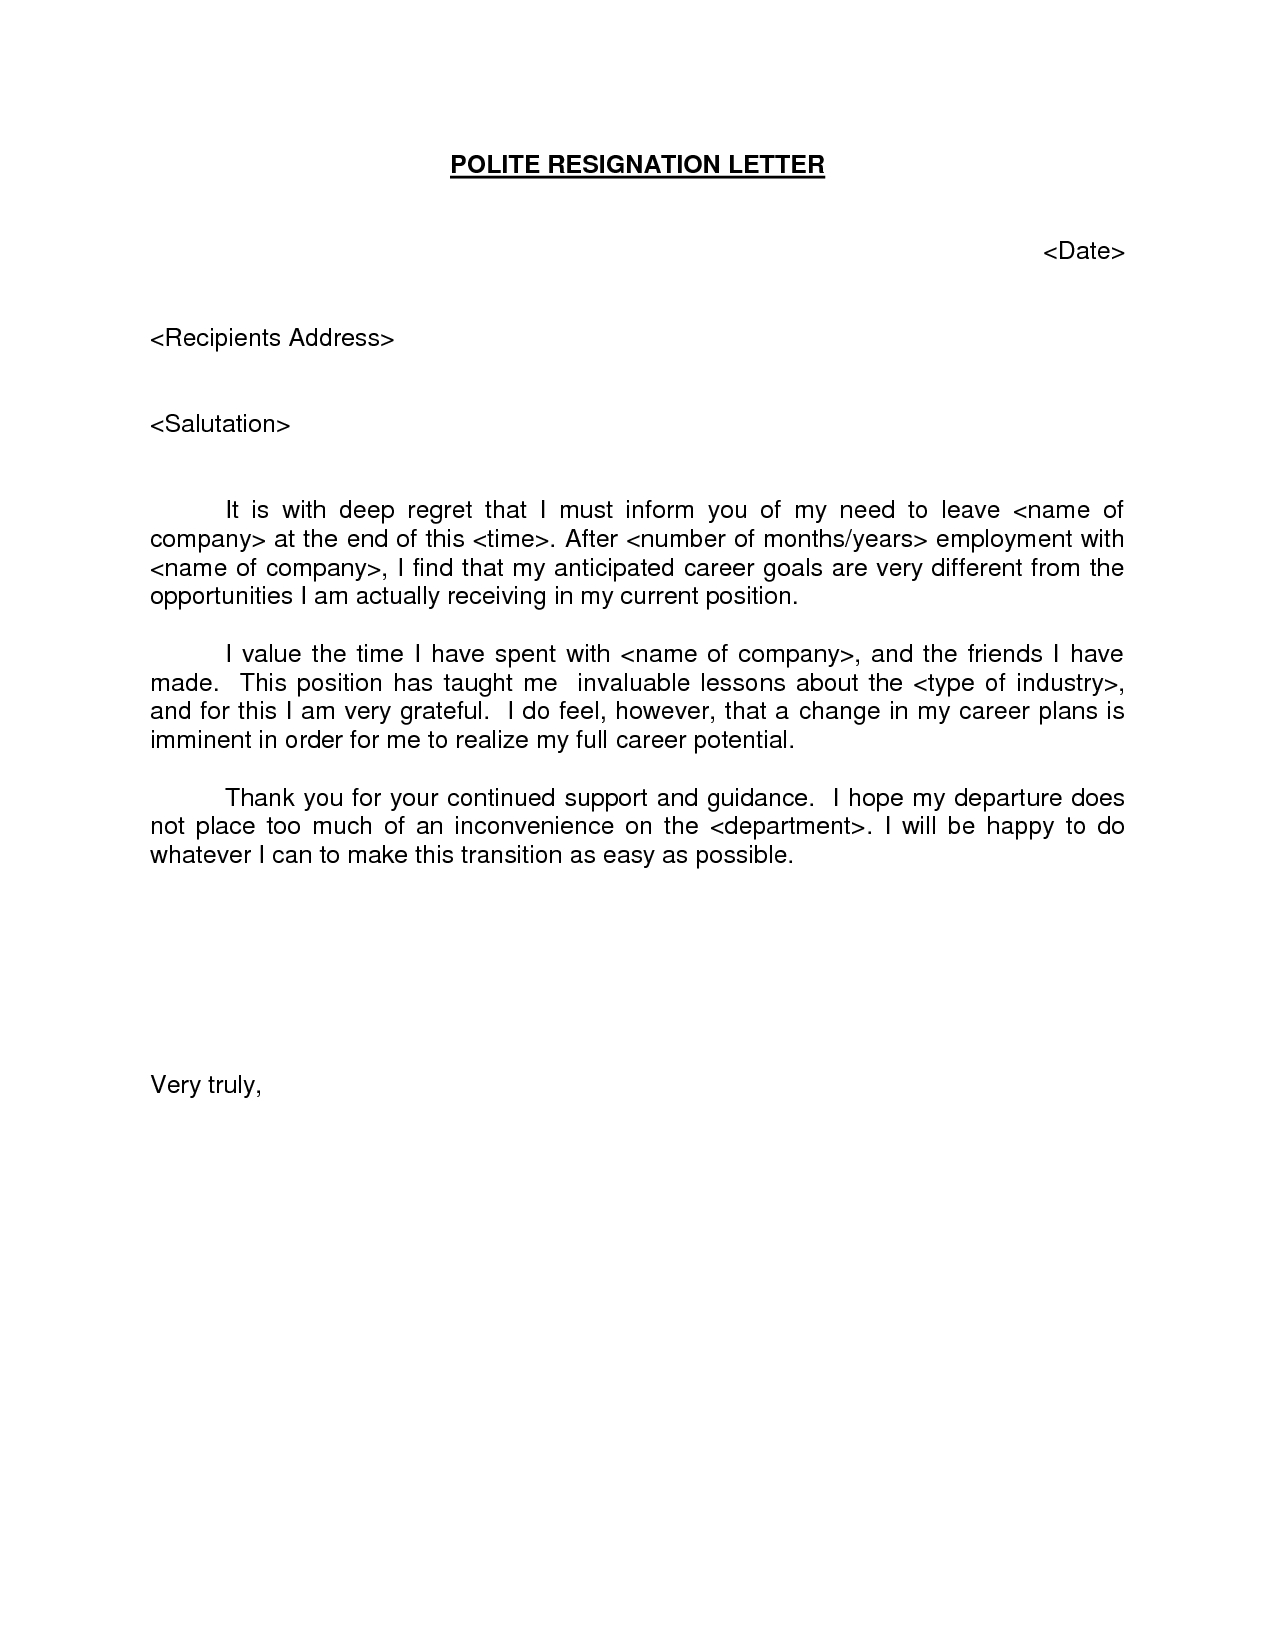 basic resignation letter template Collection-POLITE RESIGNATION LETTER BestdealformoneyWriting A Letter Resignation Email Letter Sample 18-f